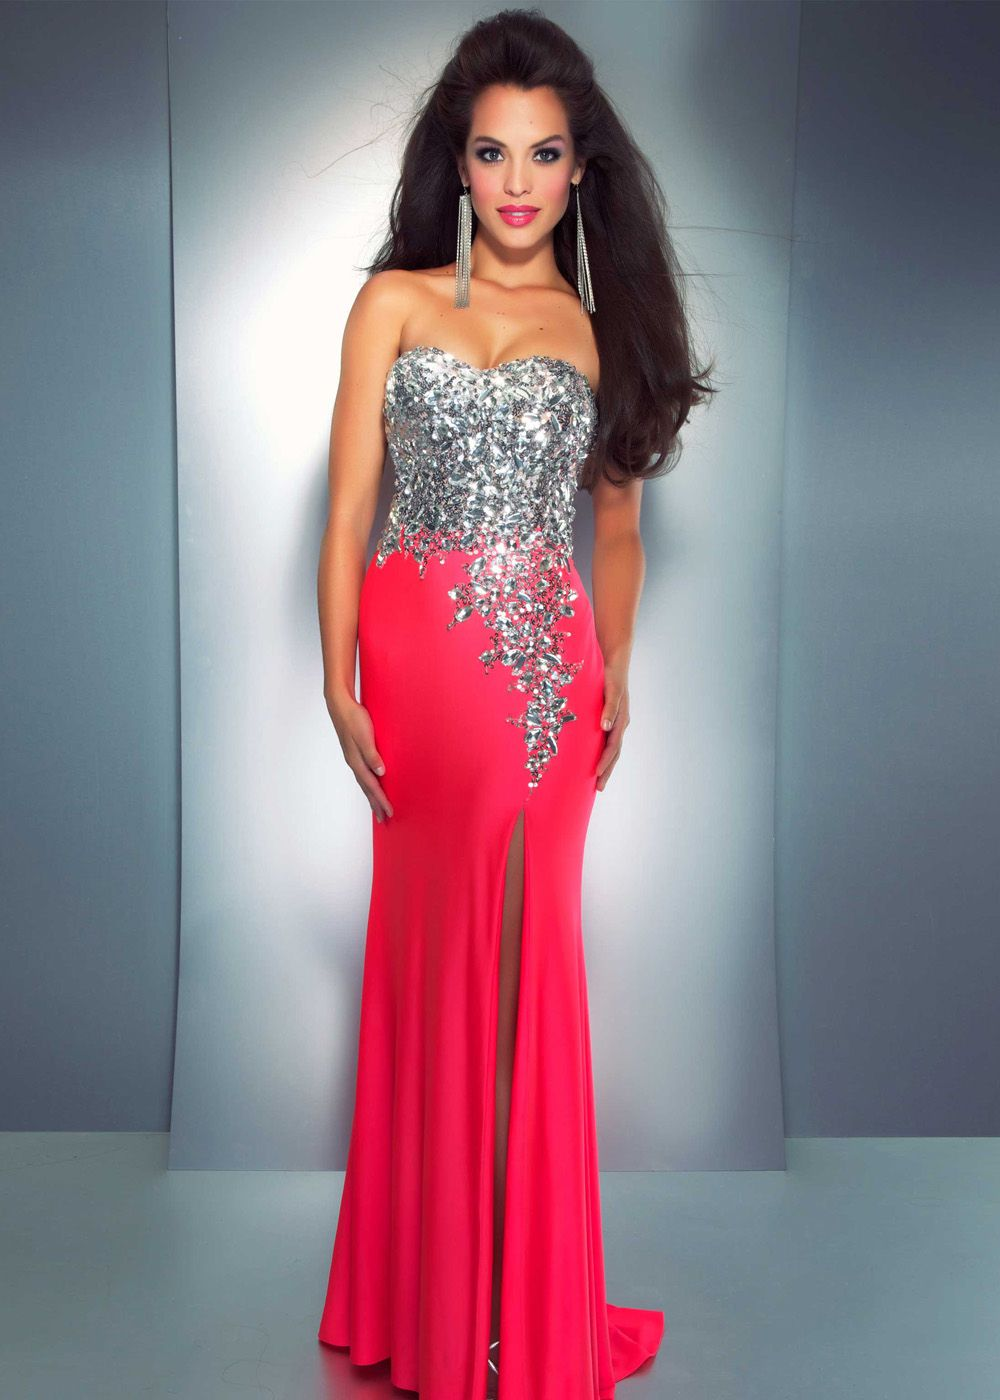 Strapless neon pink beaded prom gown with a high slit cassandra